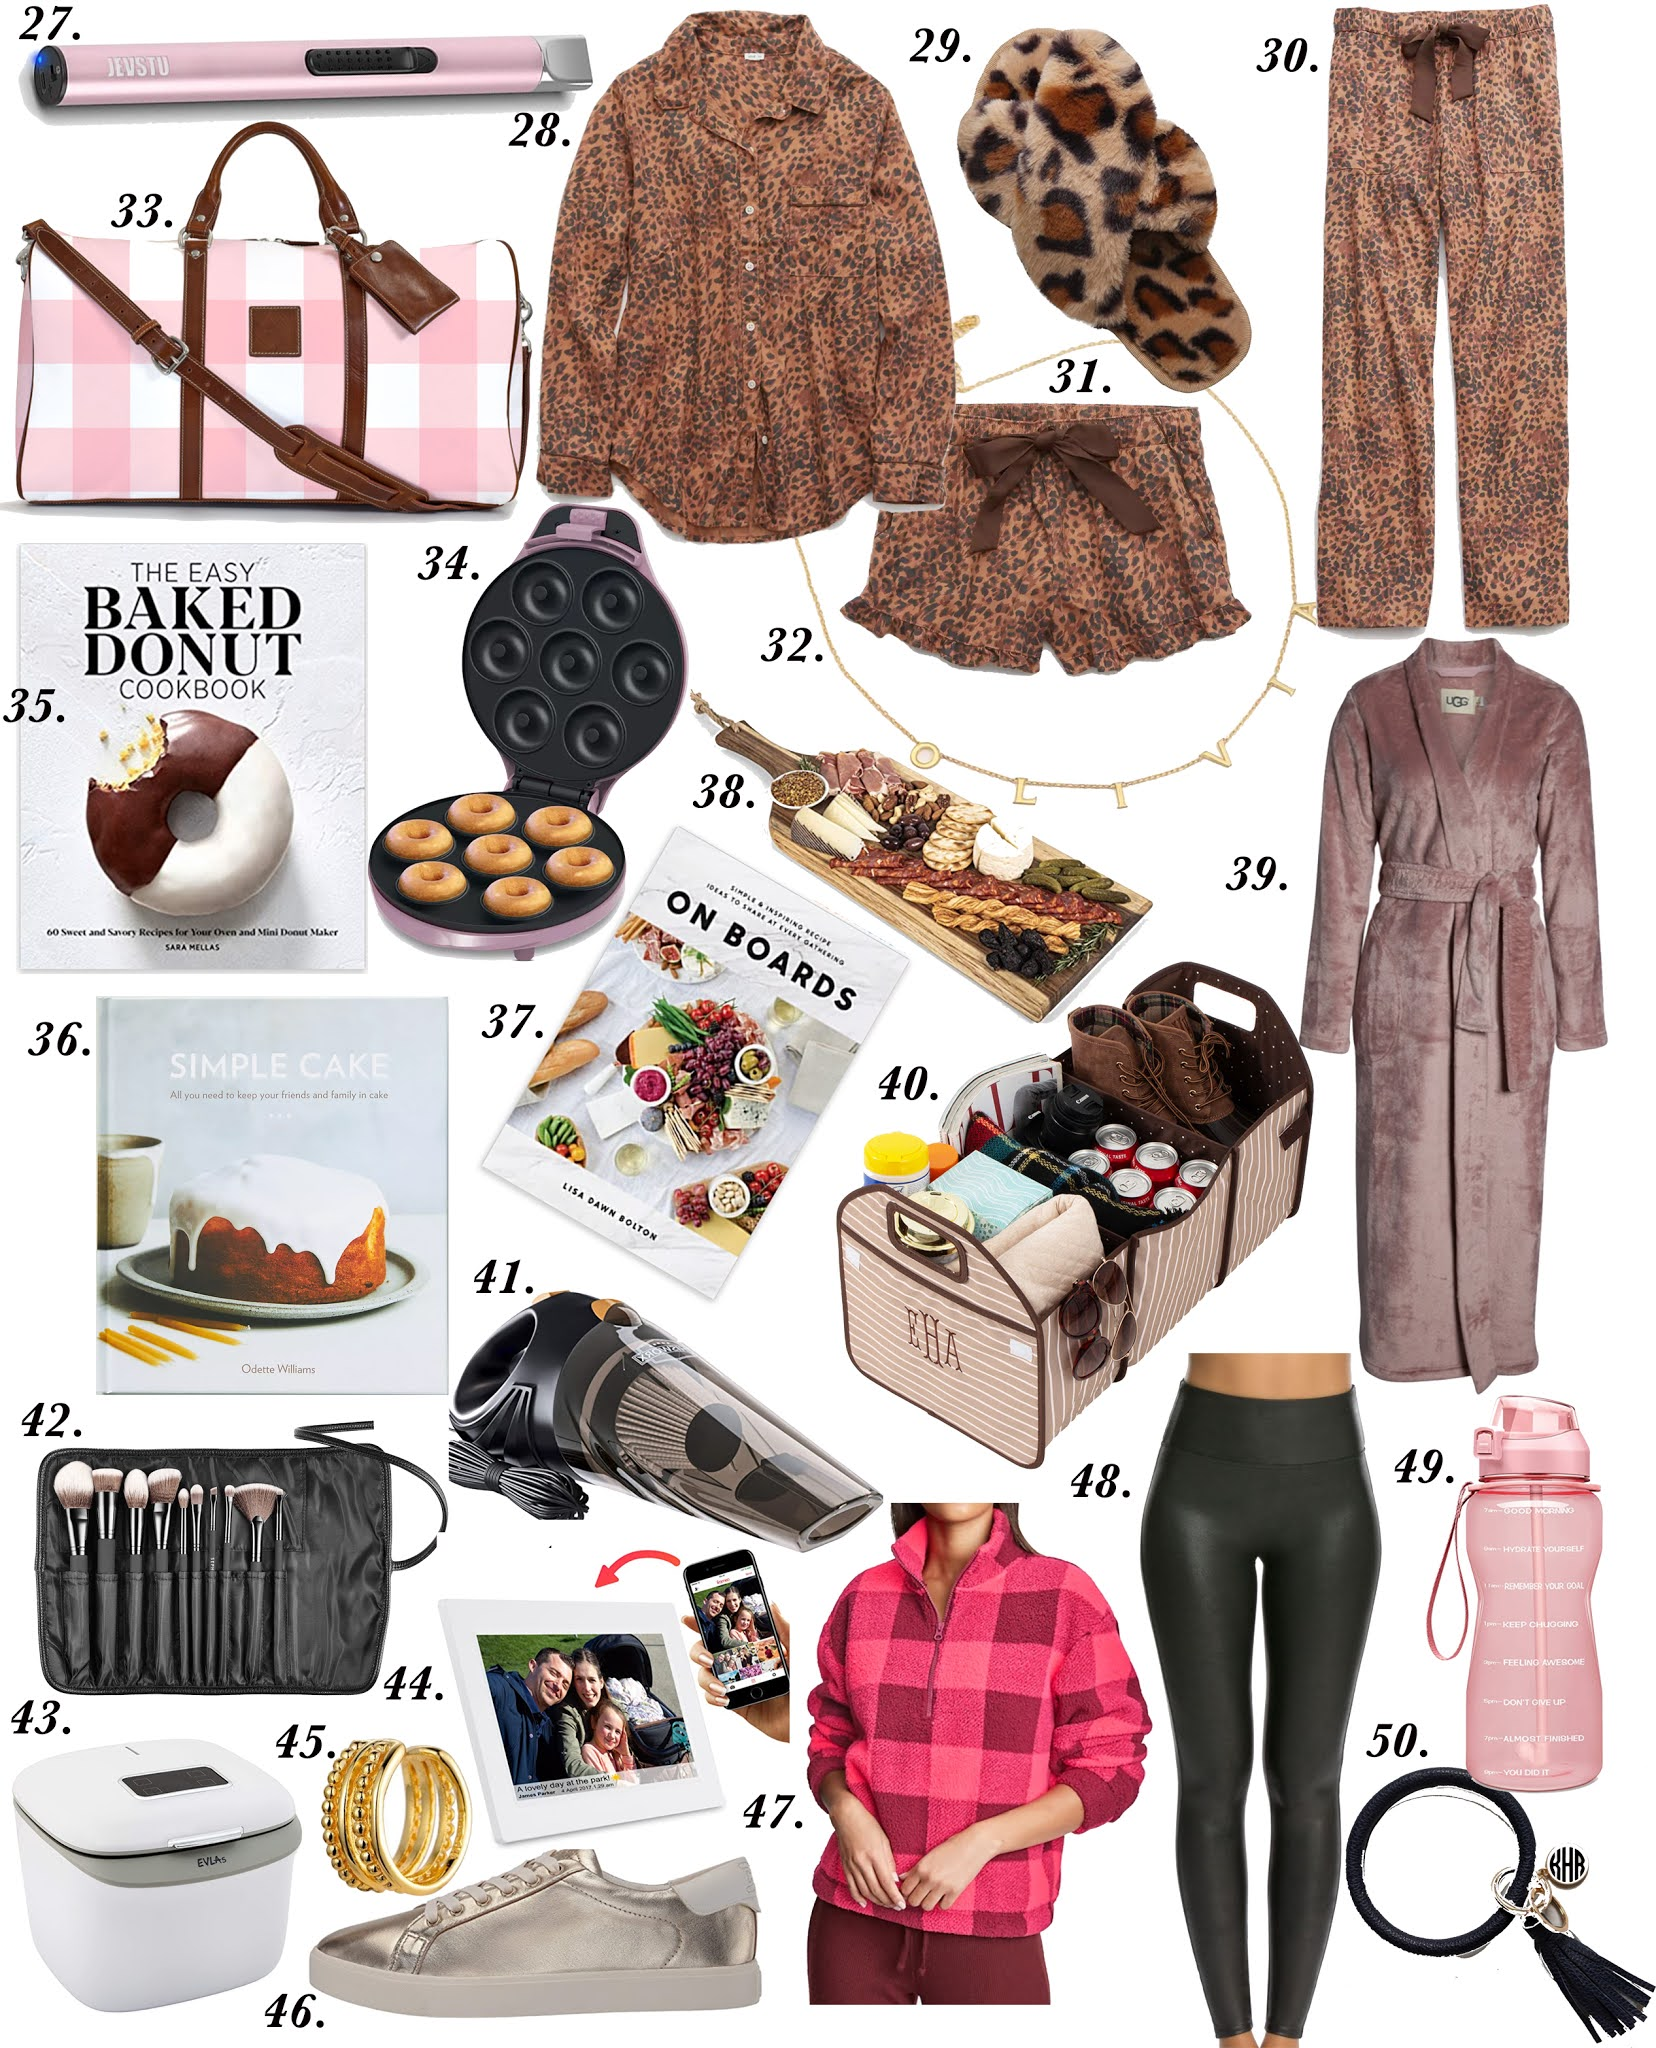 Gifts for Her + 2020 Cyber Sales - Something Delightful Blog #giftideas #giftguide2020 #giftsforher